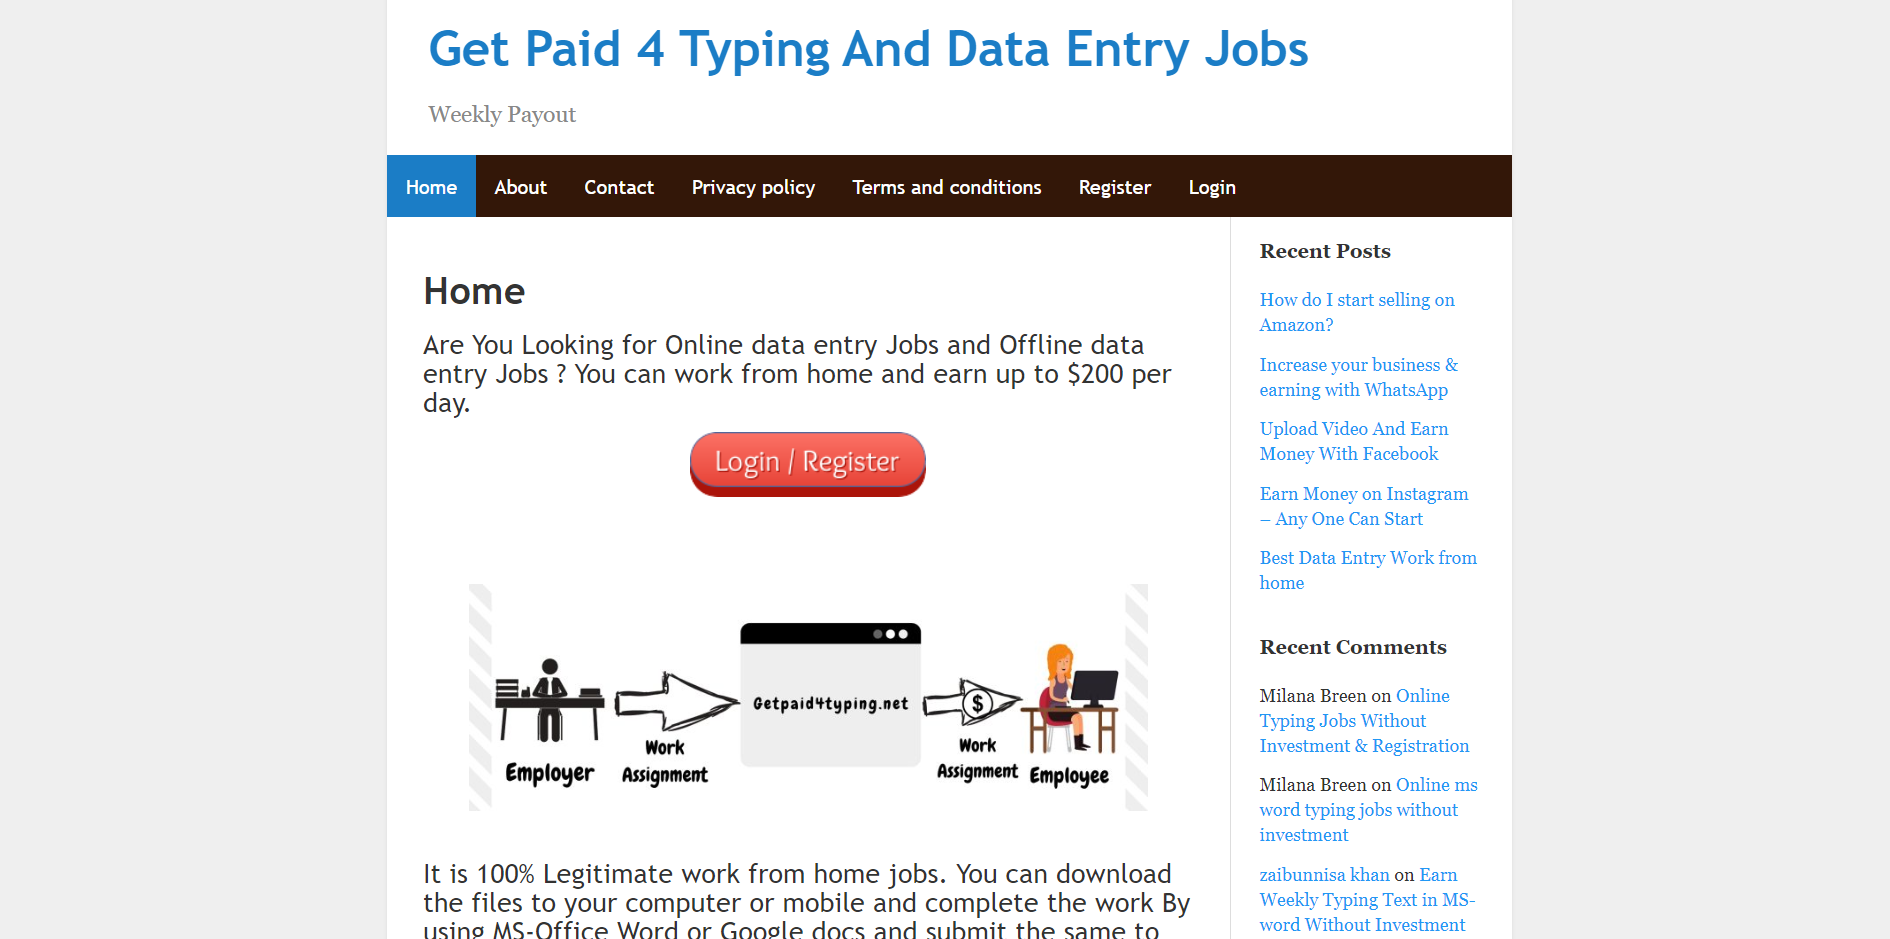 getpaidfortyping.net main page